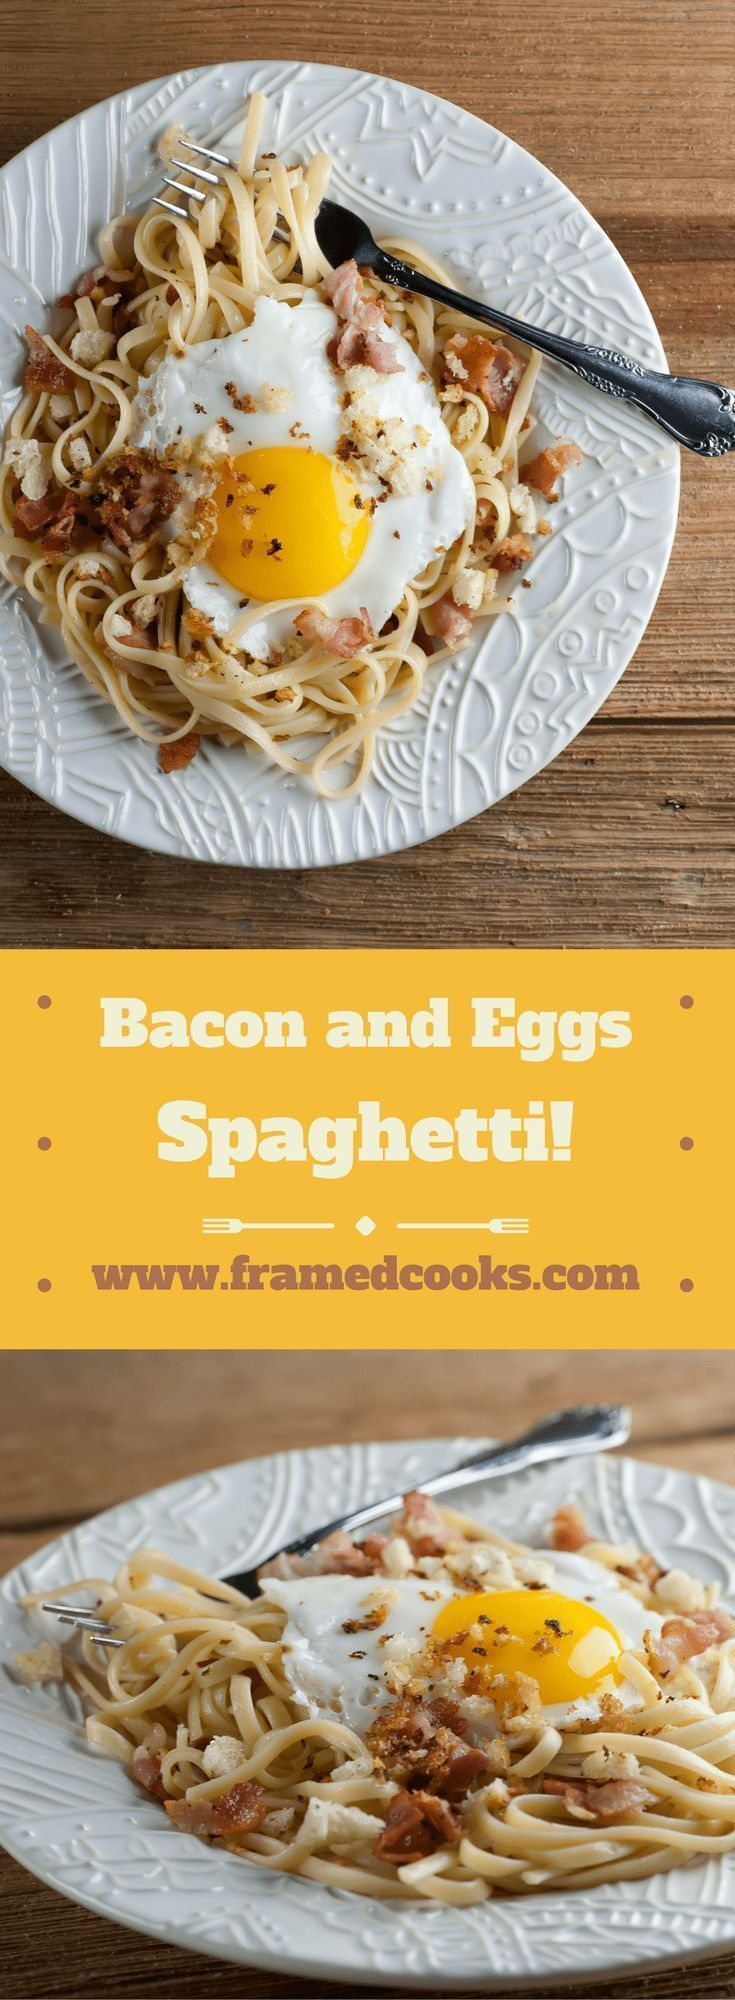 Bacon and Eggs Spaghetti - Framed Cooks Bacon and eggs aren't just for breakfast anymore - not when